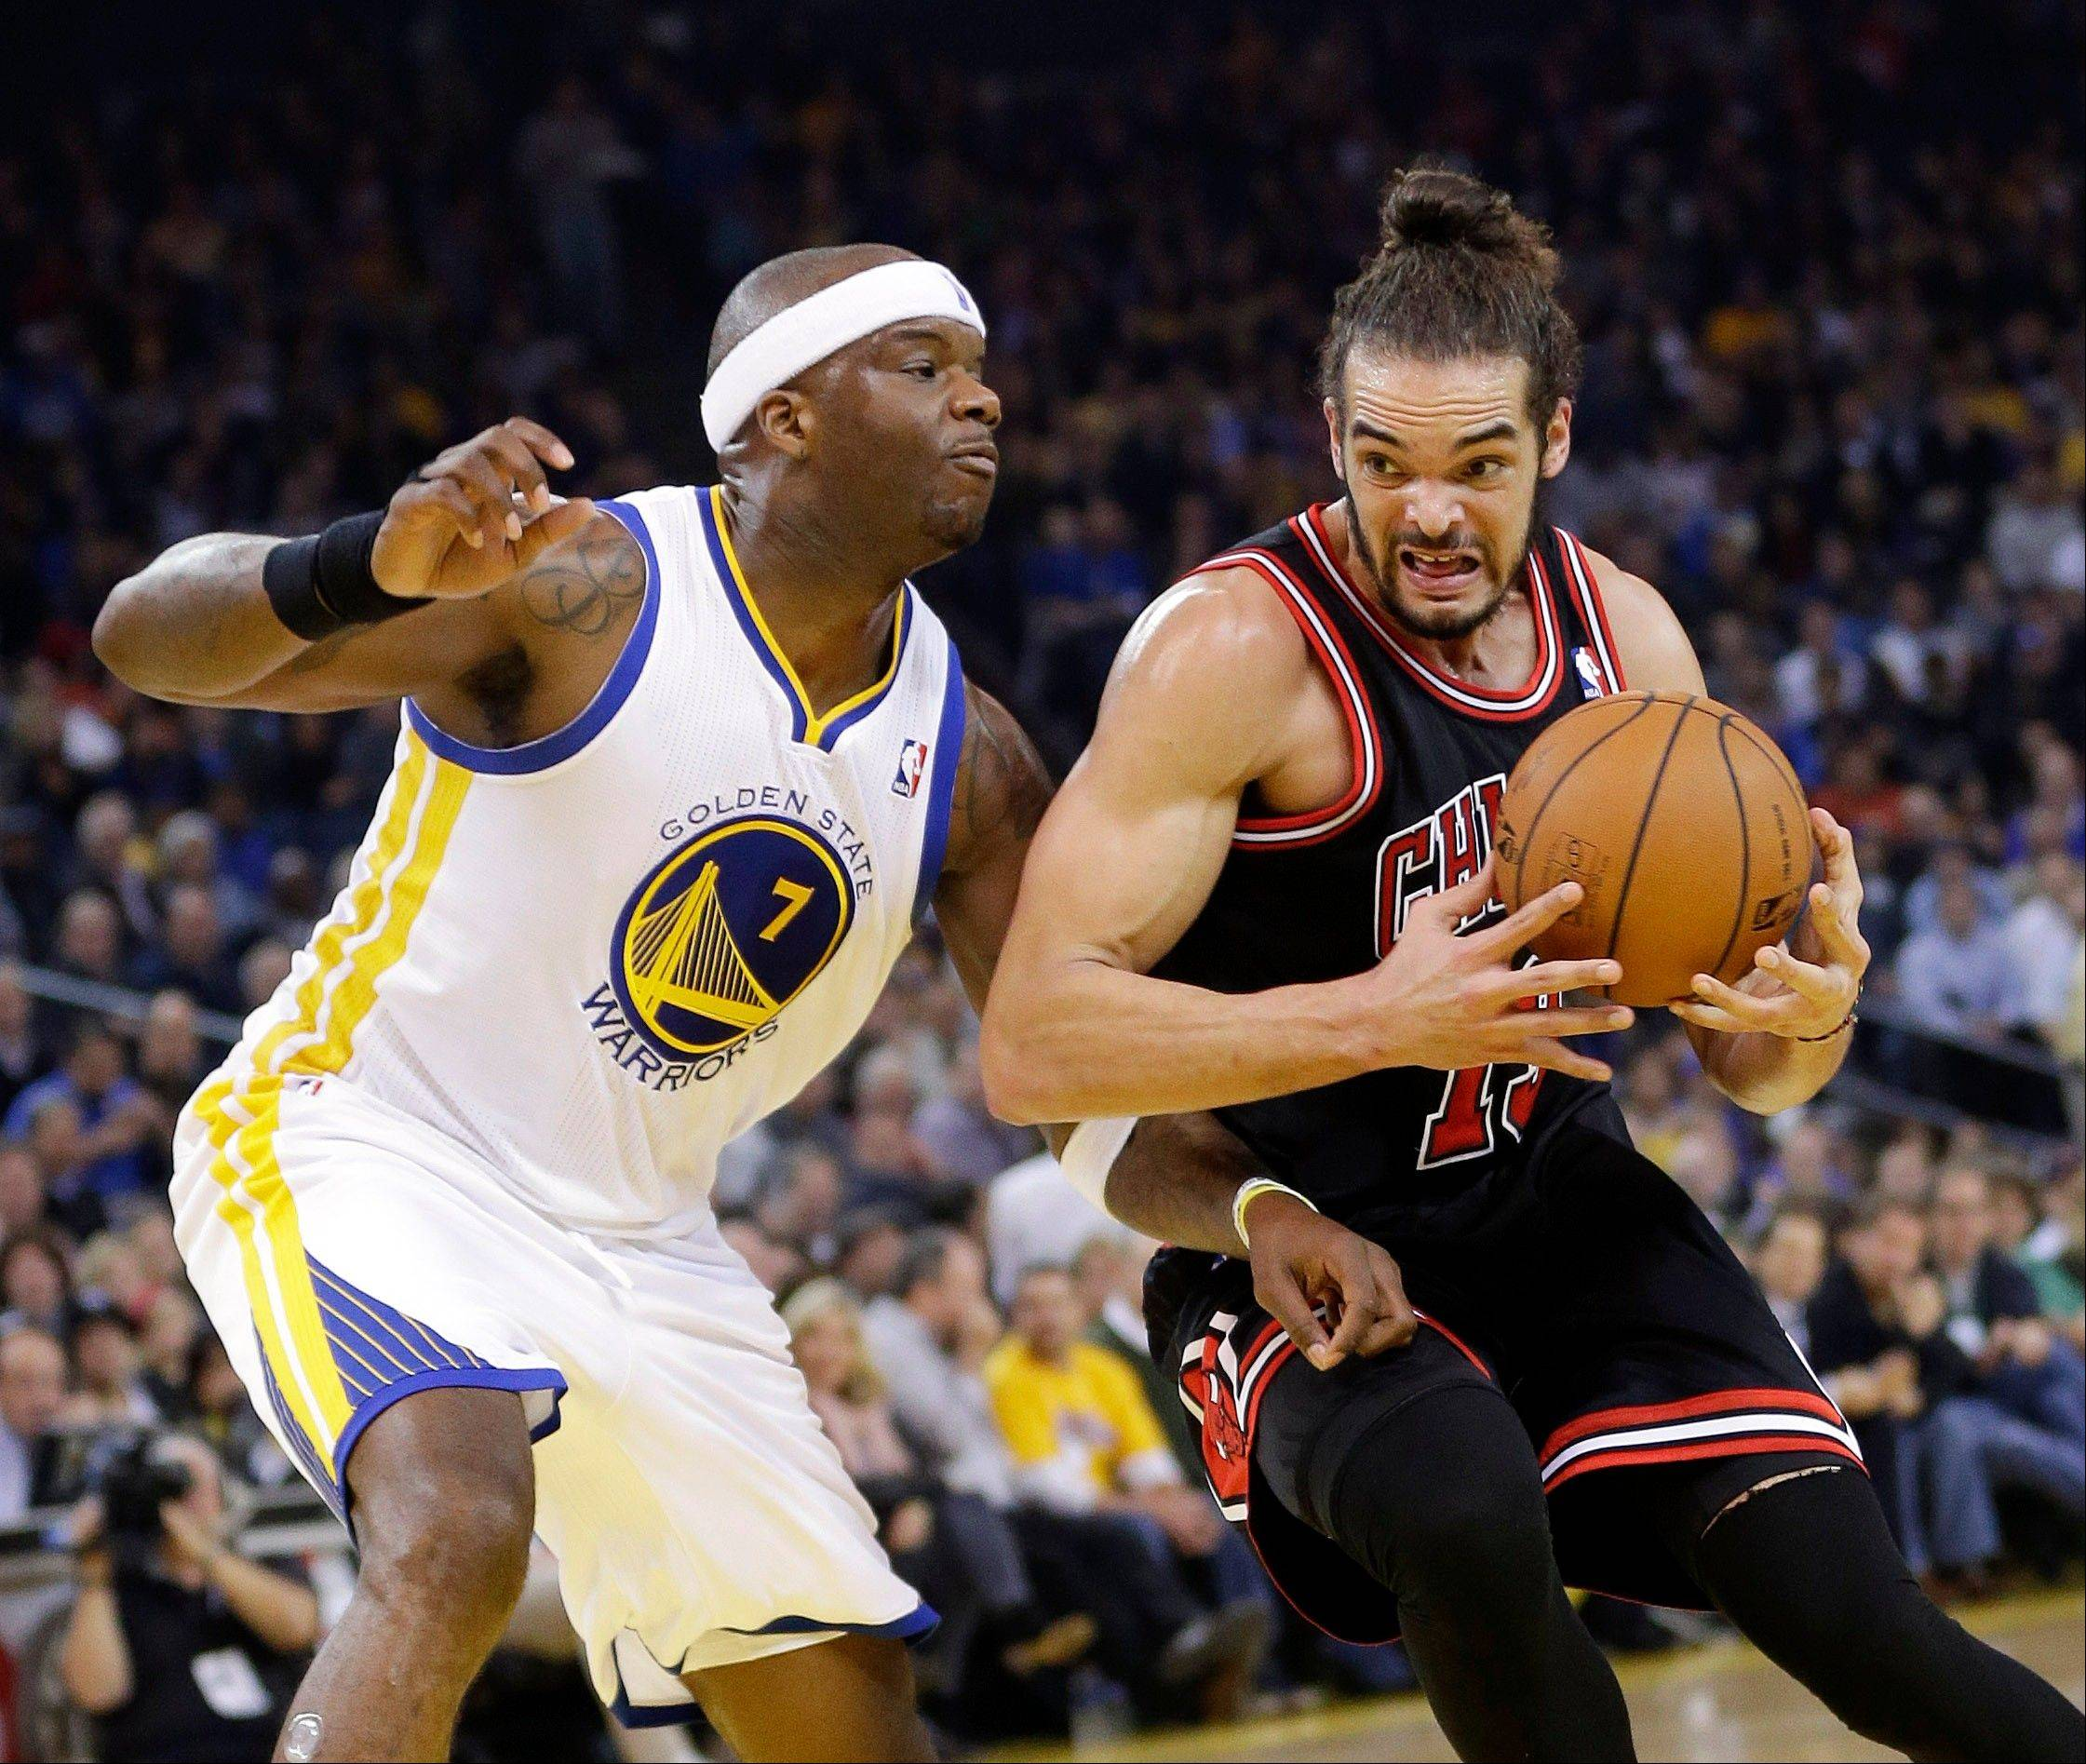 Associated PressThe Bulls' Joakim Noah dribbles next to Golden State Warriors' Jermaine O'Neal during the first half of the game Thursday in Oakland, Calif.